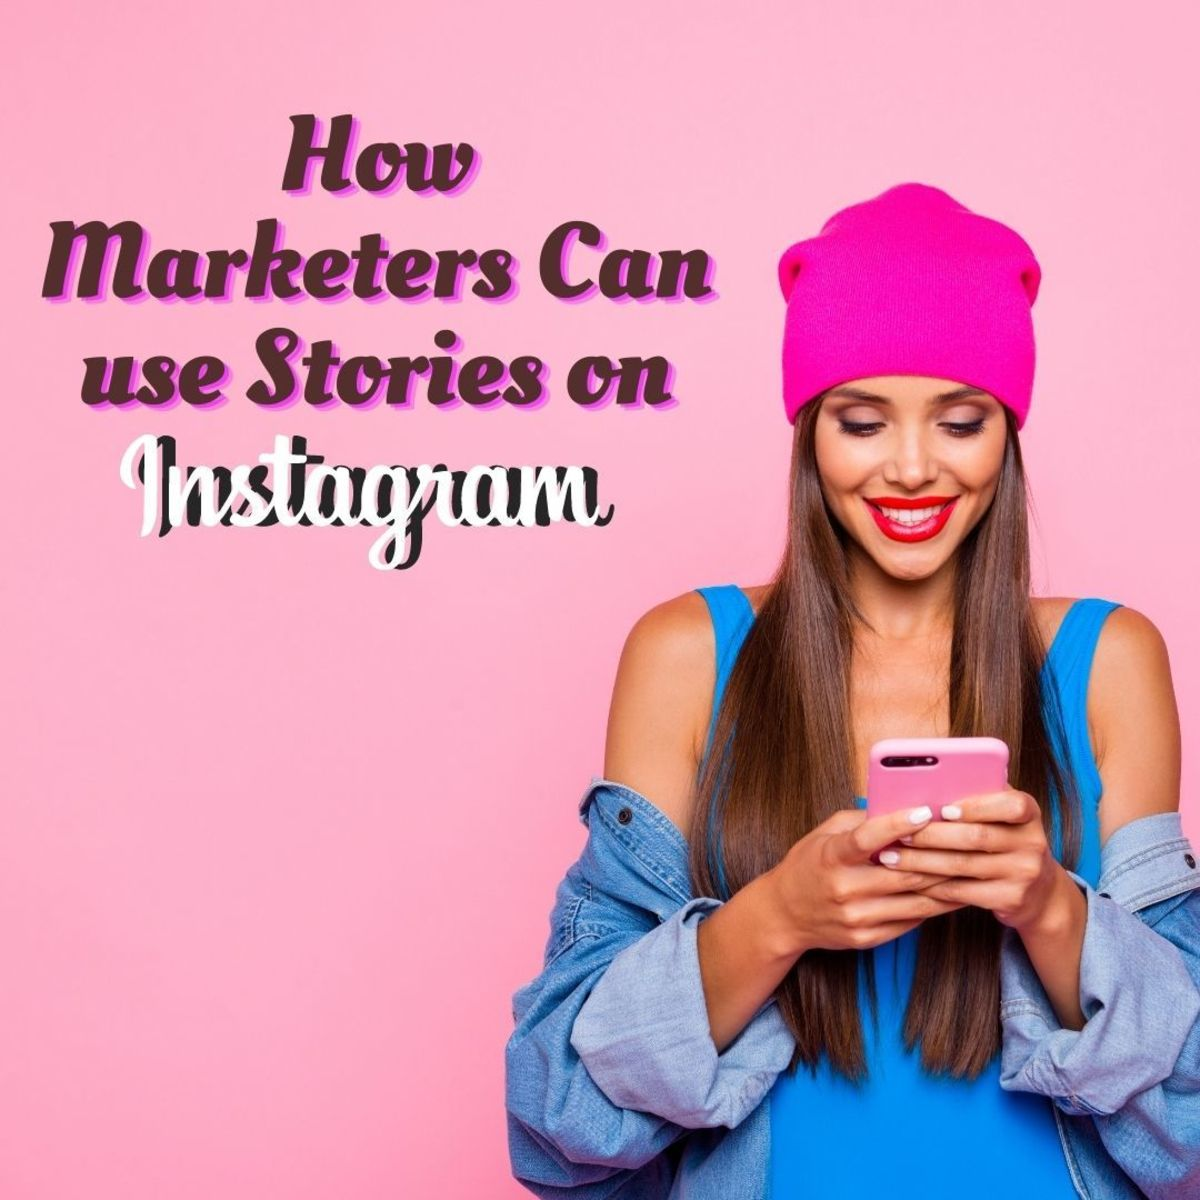 Instagram Stories: A New Era for Organic Marketing